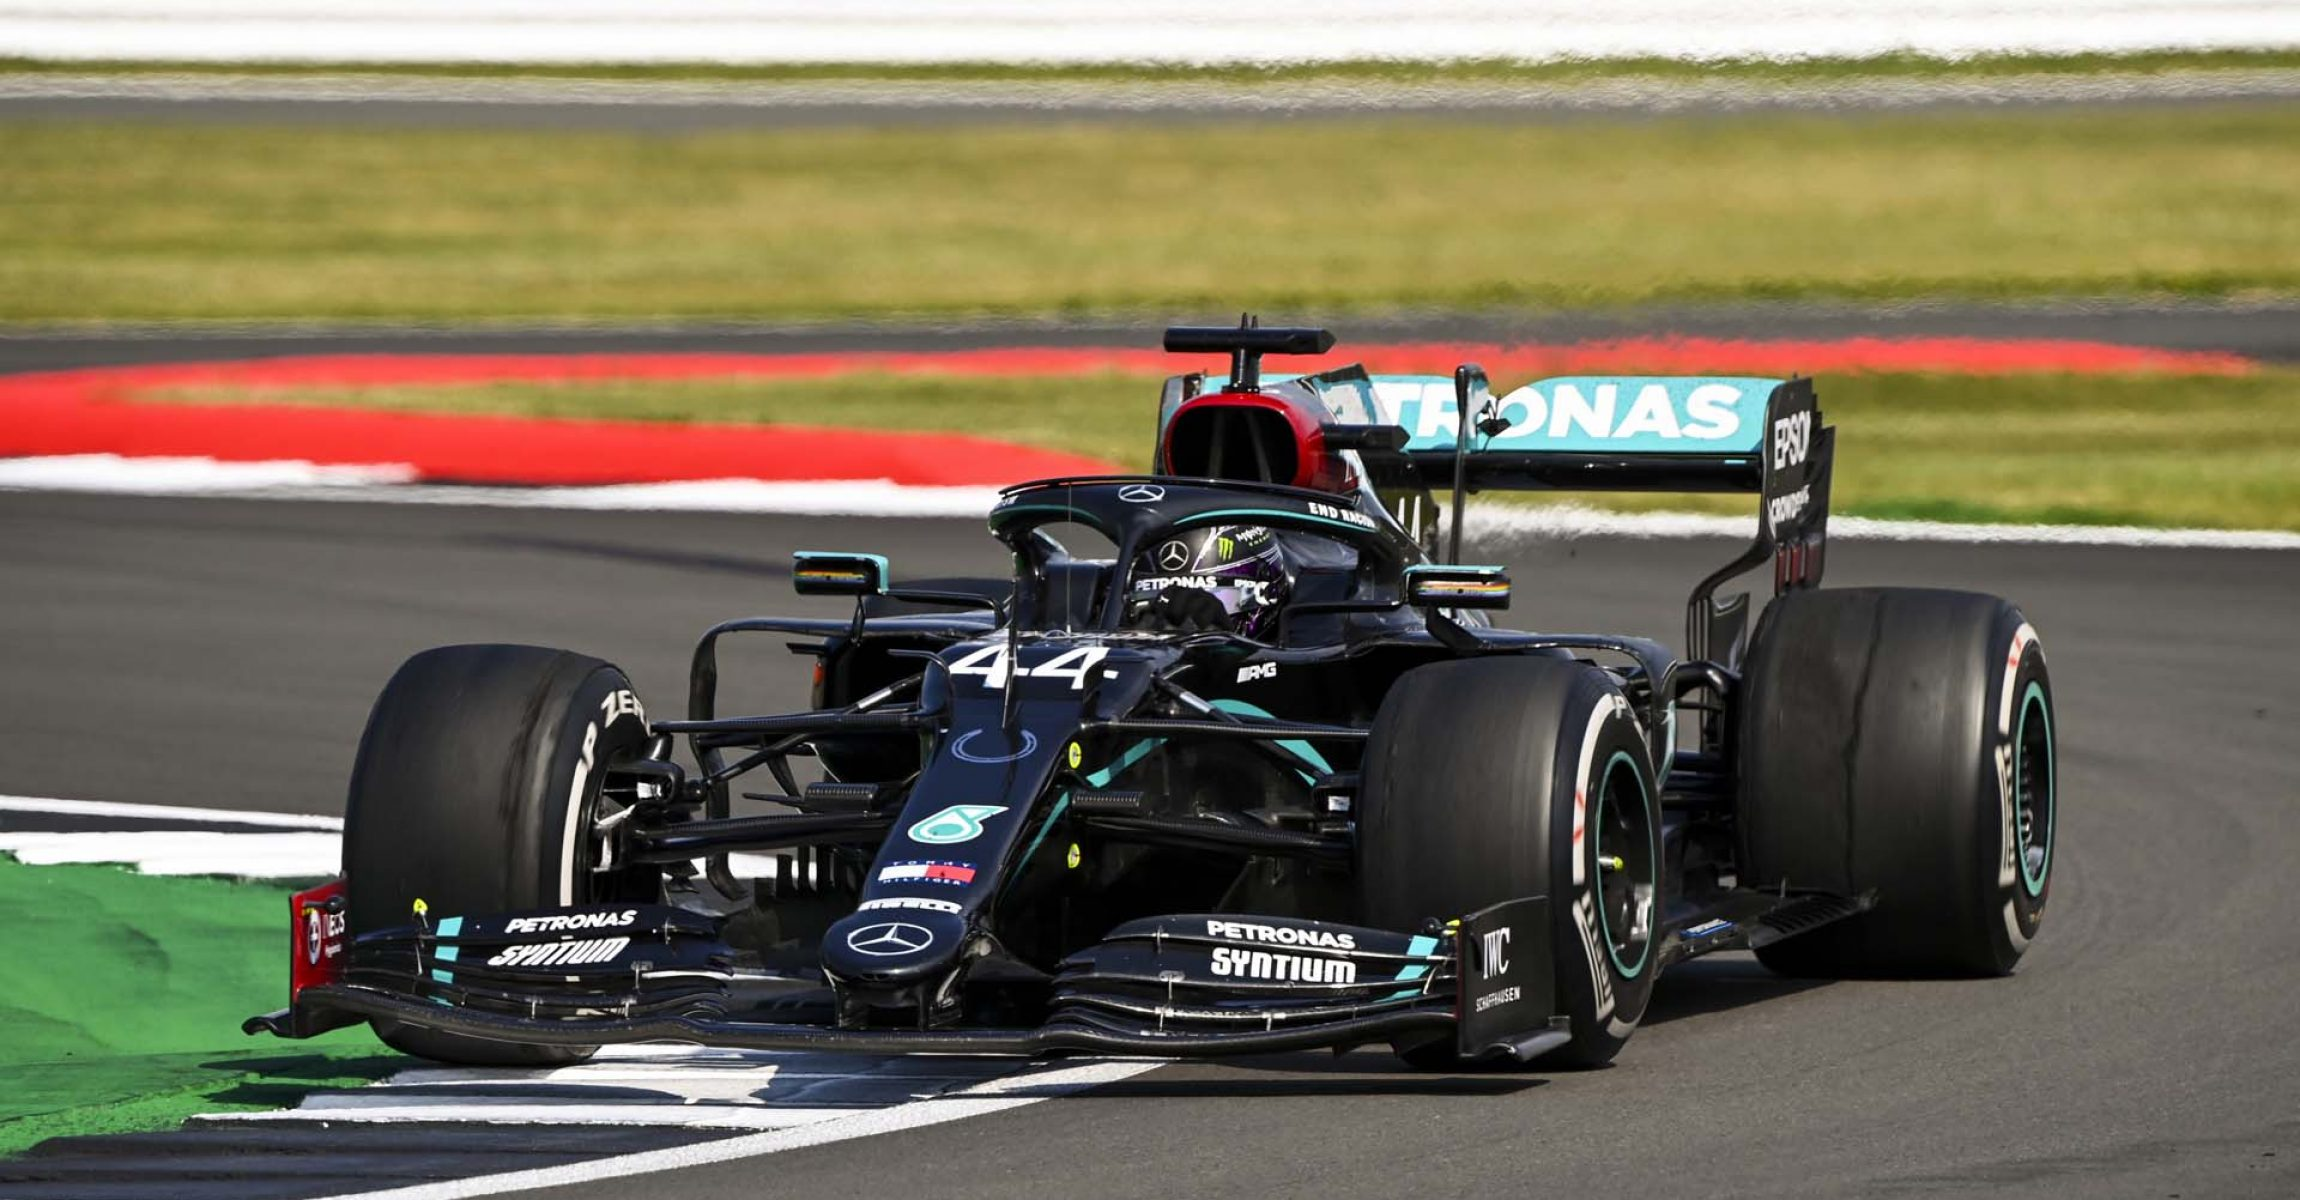 2020 70th Anniversary Grand Prix, Sunday - LAT Images Lewis Hamilton Mercedes